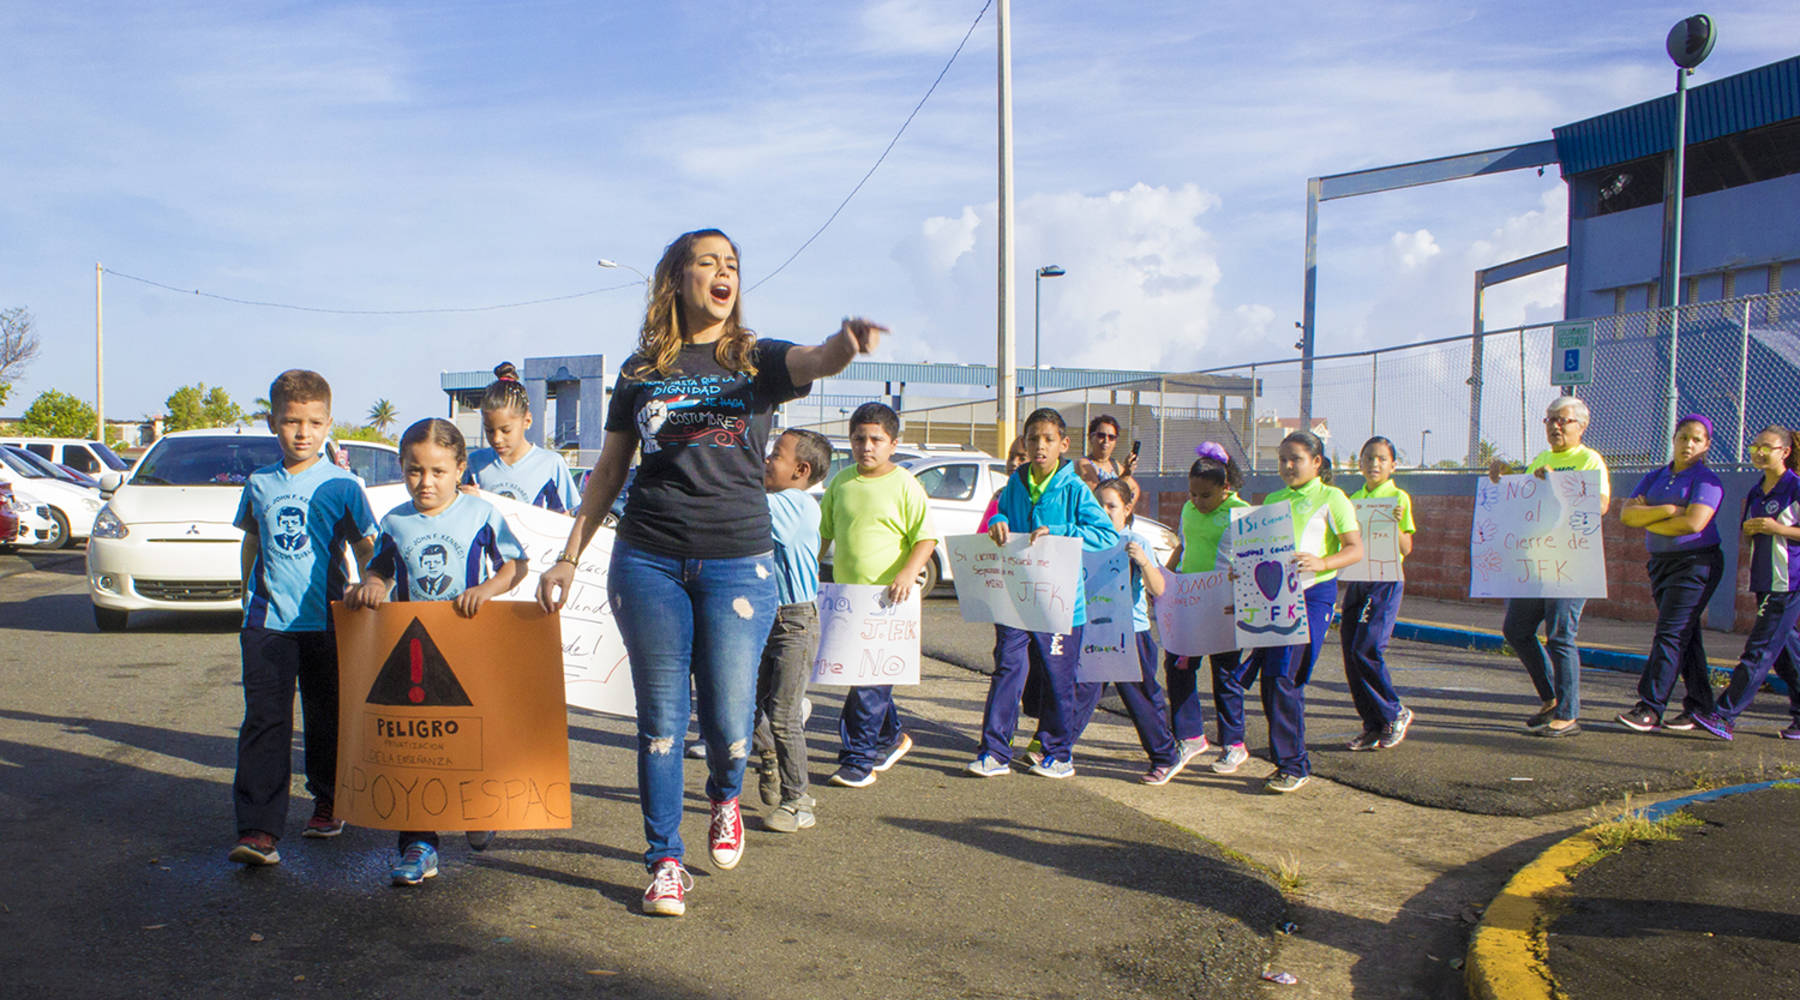 Puerto Rico's school system braces for change: closures and